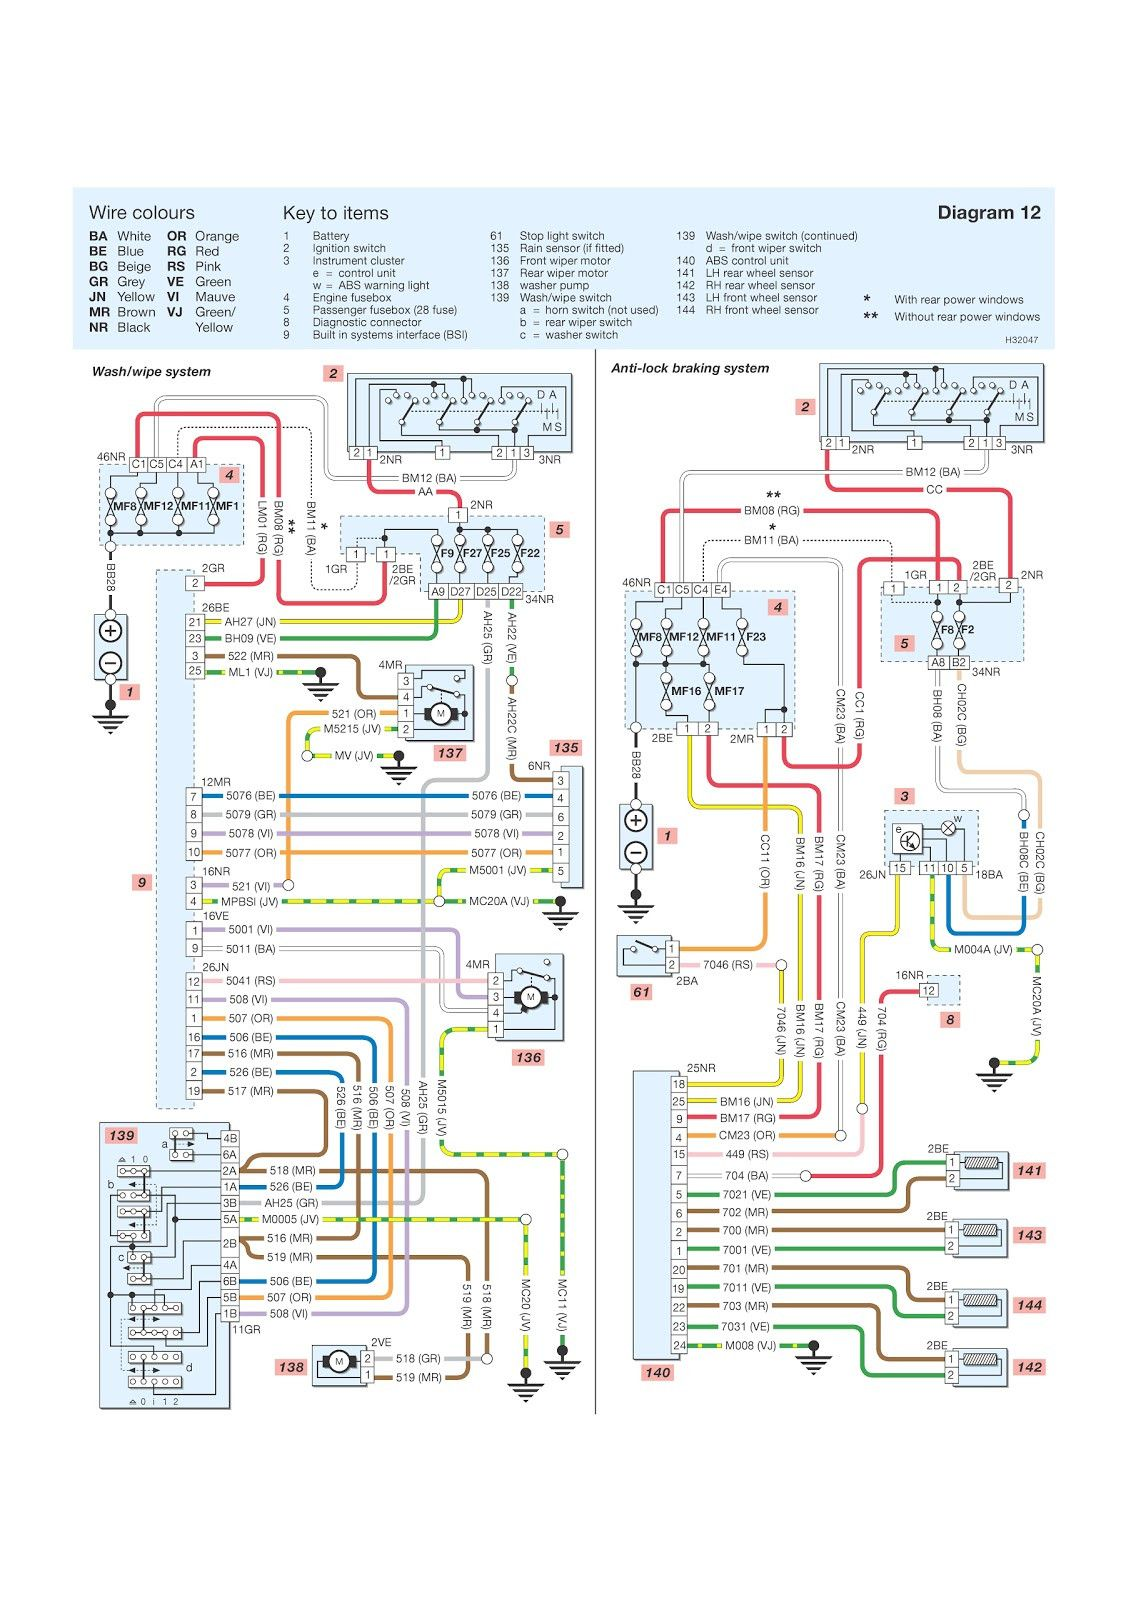 Peugeot 206 Wiring Diagram Stereo Example Electrical Aftermarket Radio New Your Diagrams Source Adorable Rh Pinterest Co Uk